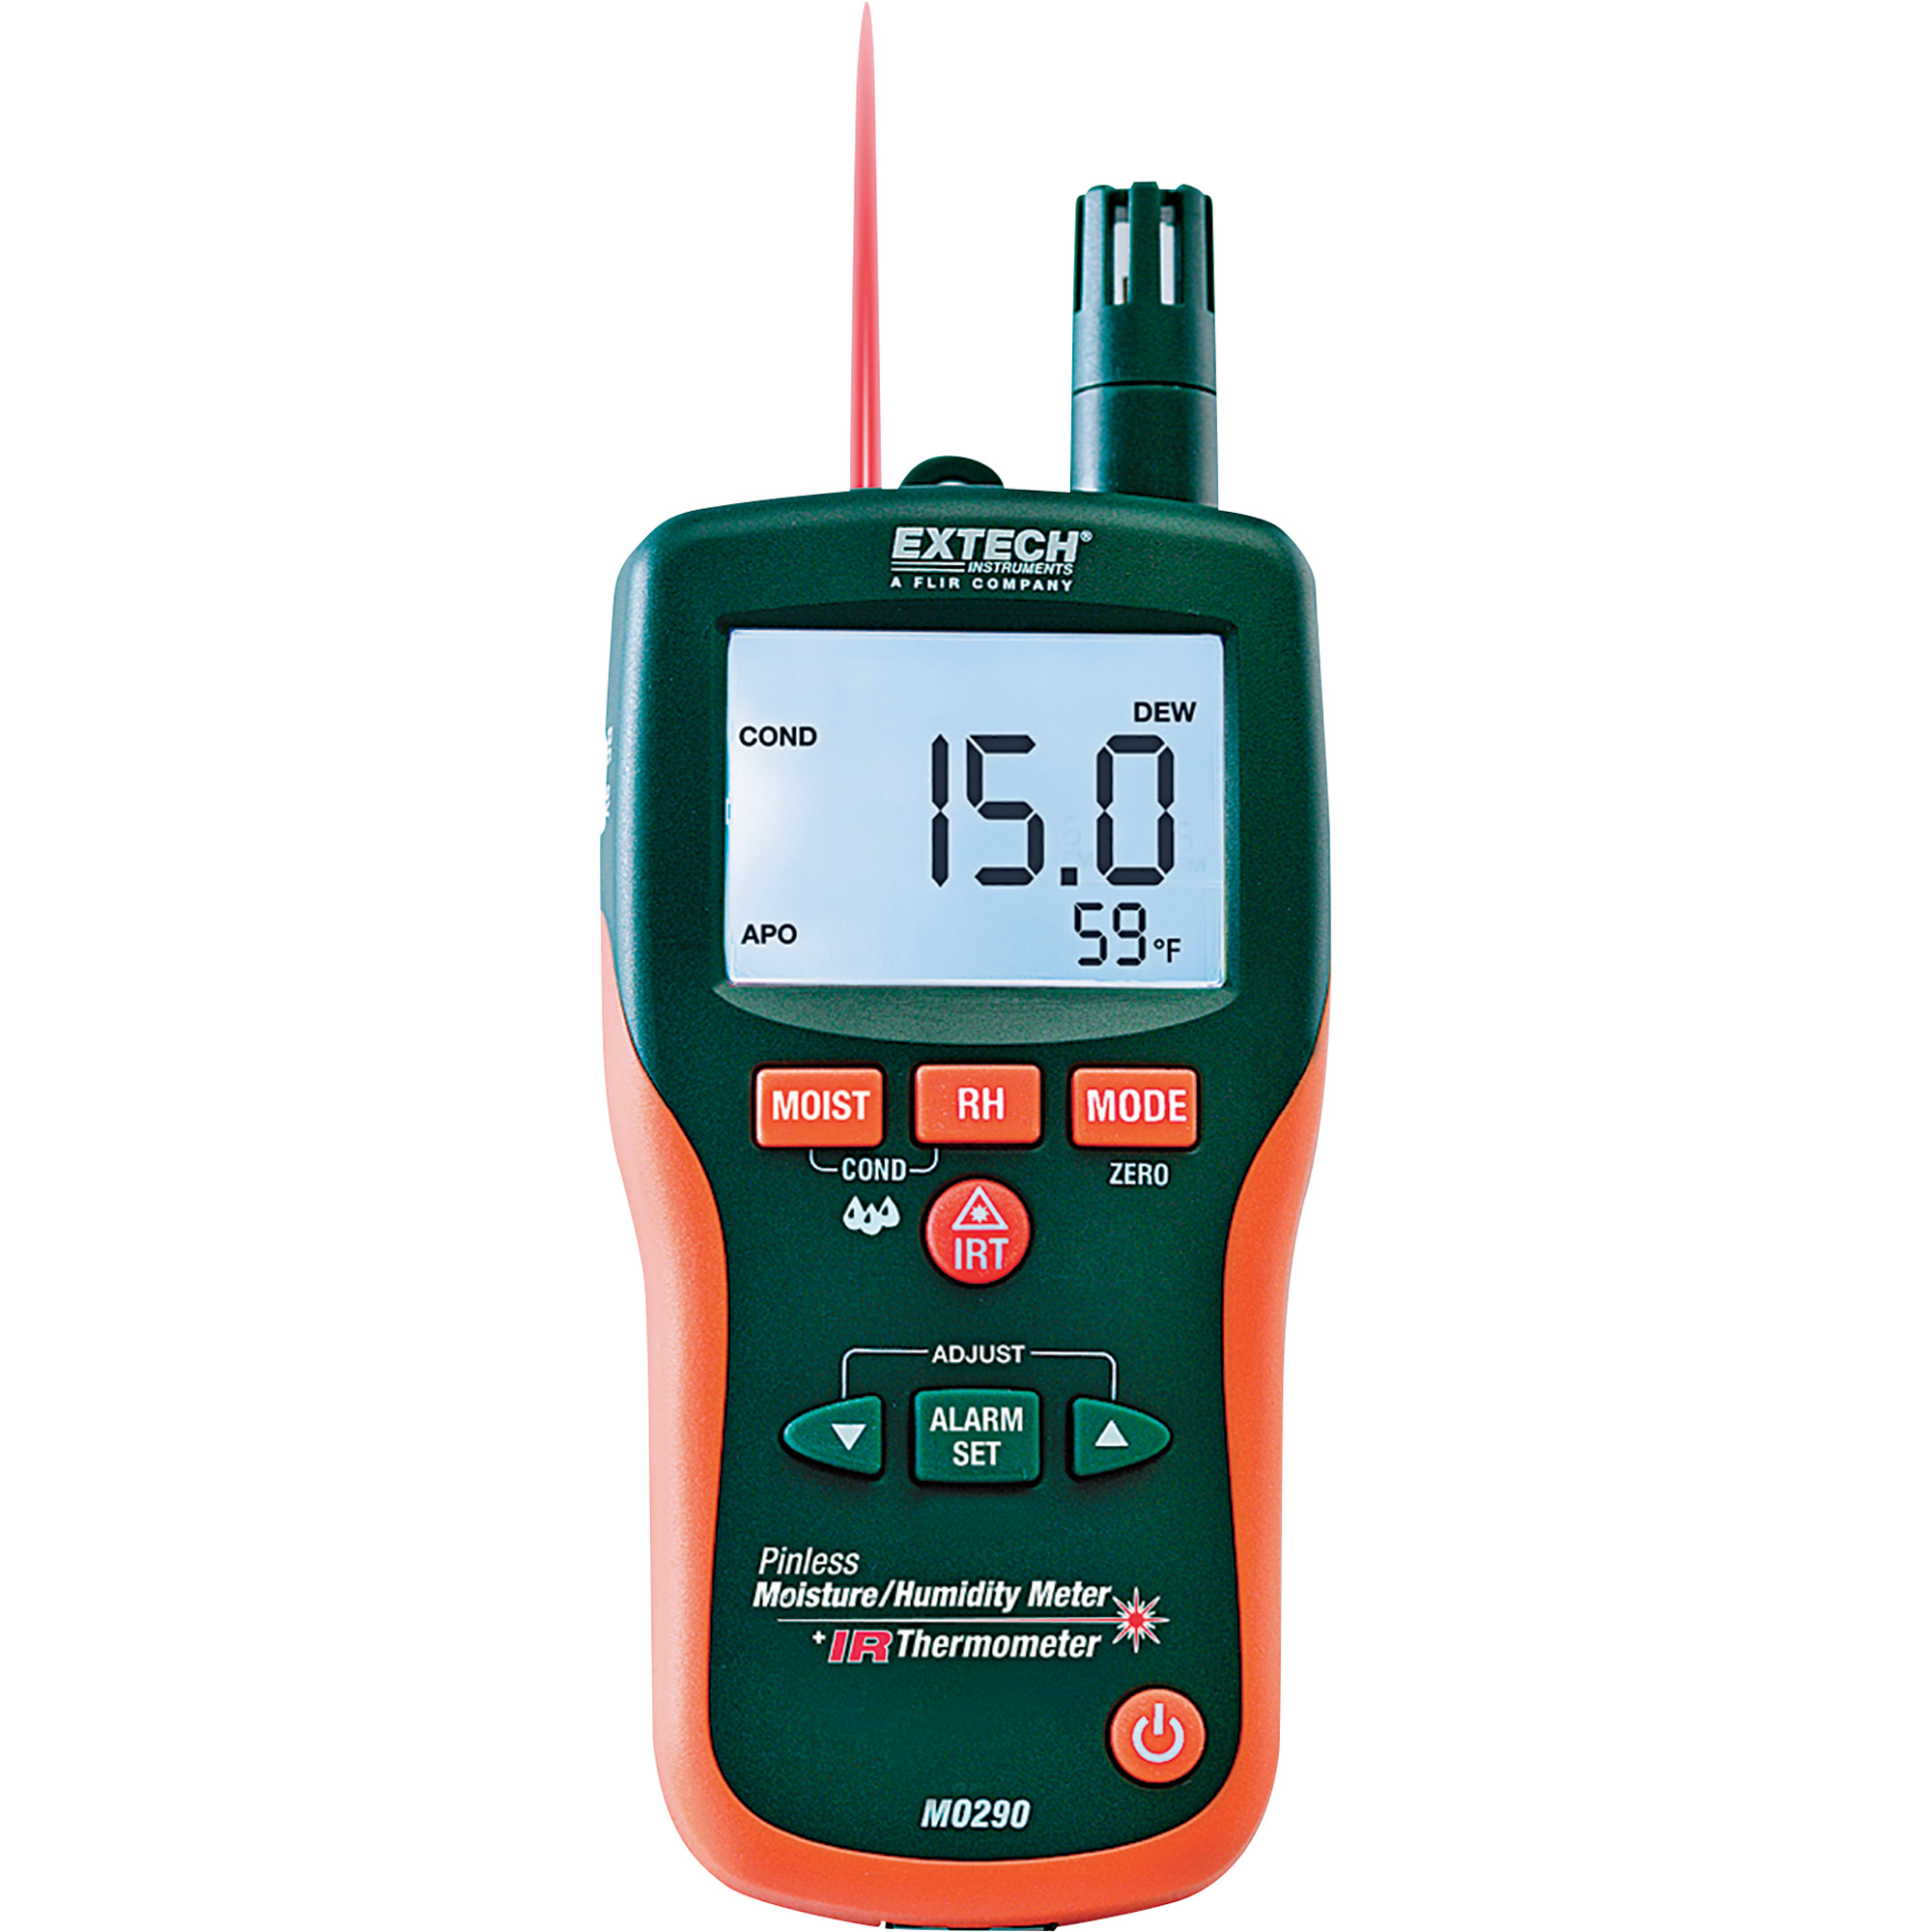 Extech MO290/ 8-in-1 Meter with IR Thermometer